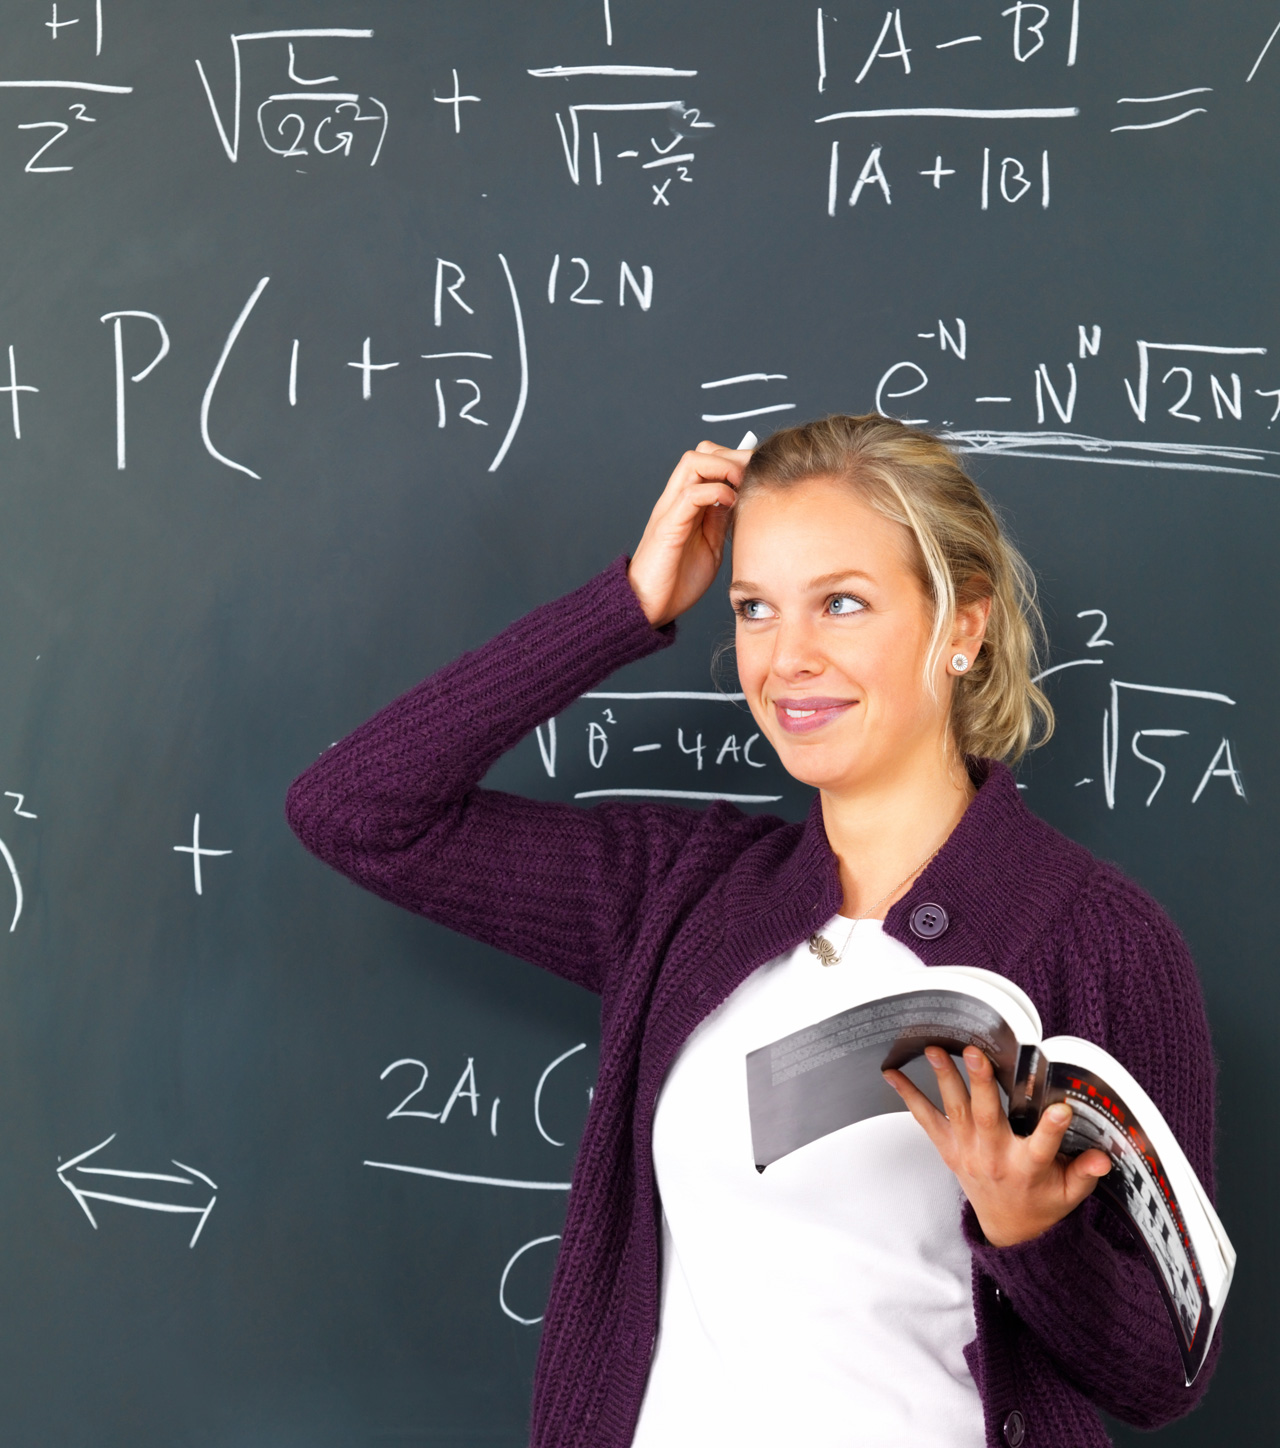 algebra tutor online Contact algebra tutor online let me know how i can help you in math - please provide details and a contact phone number and email  indicates required field.